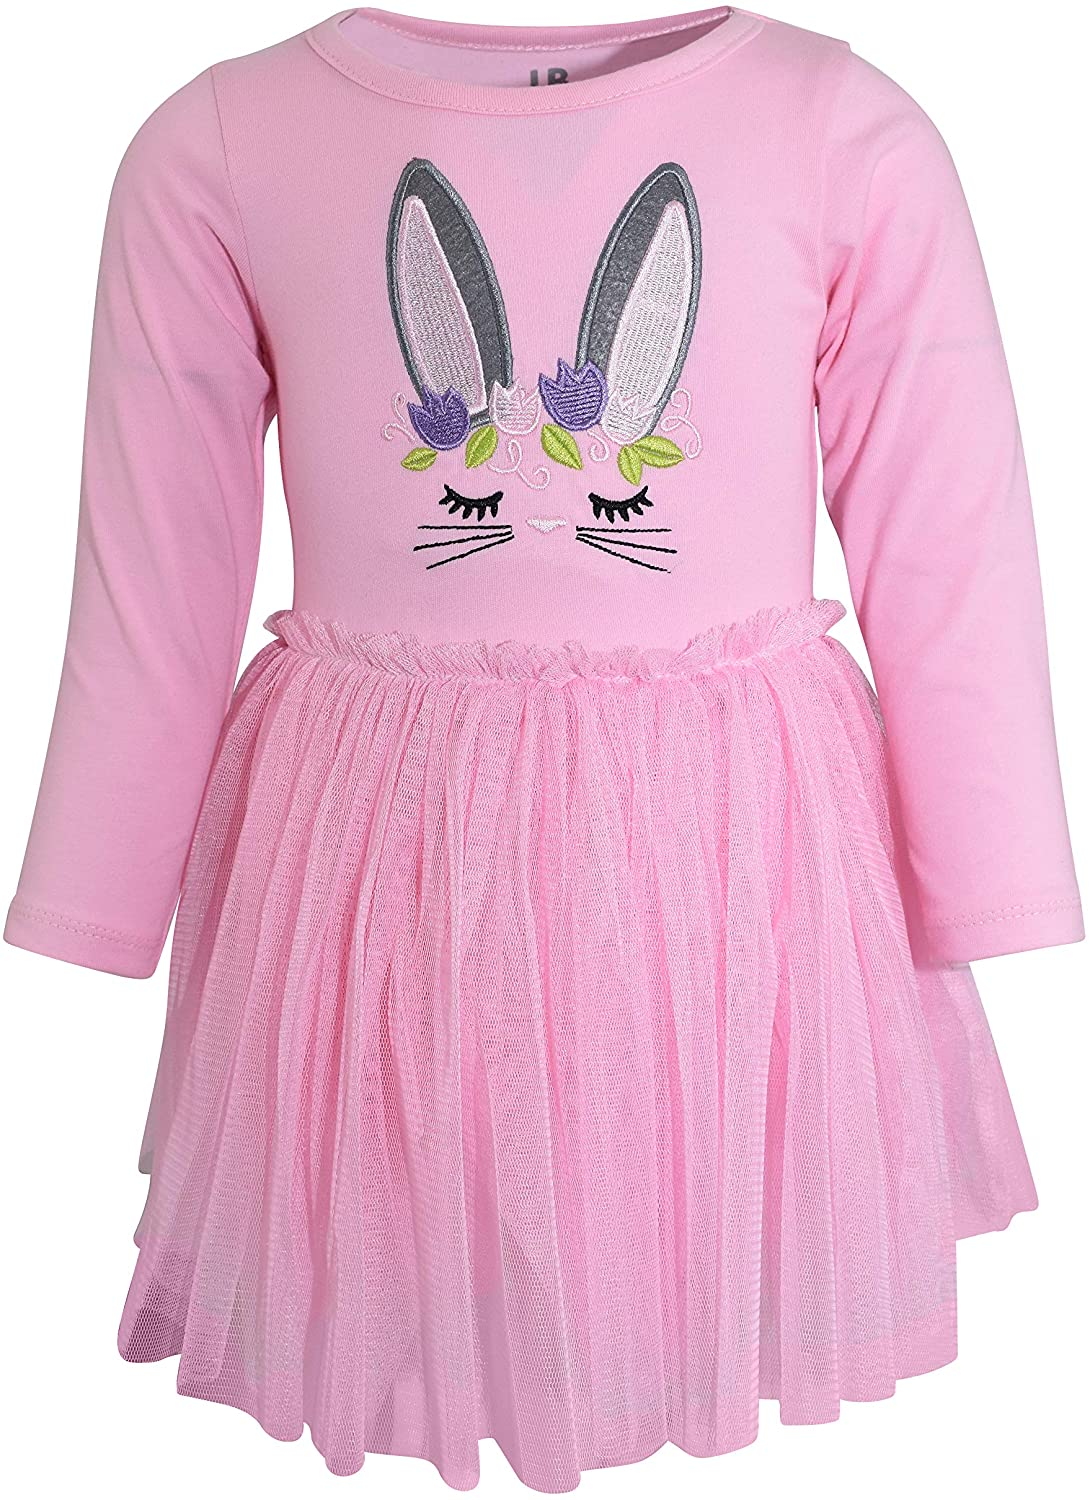 Unique Baby Girls Easter Bunny Embroidery Dress with Tutu